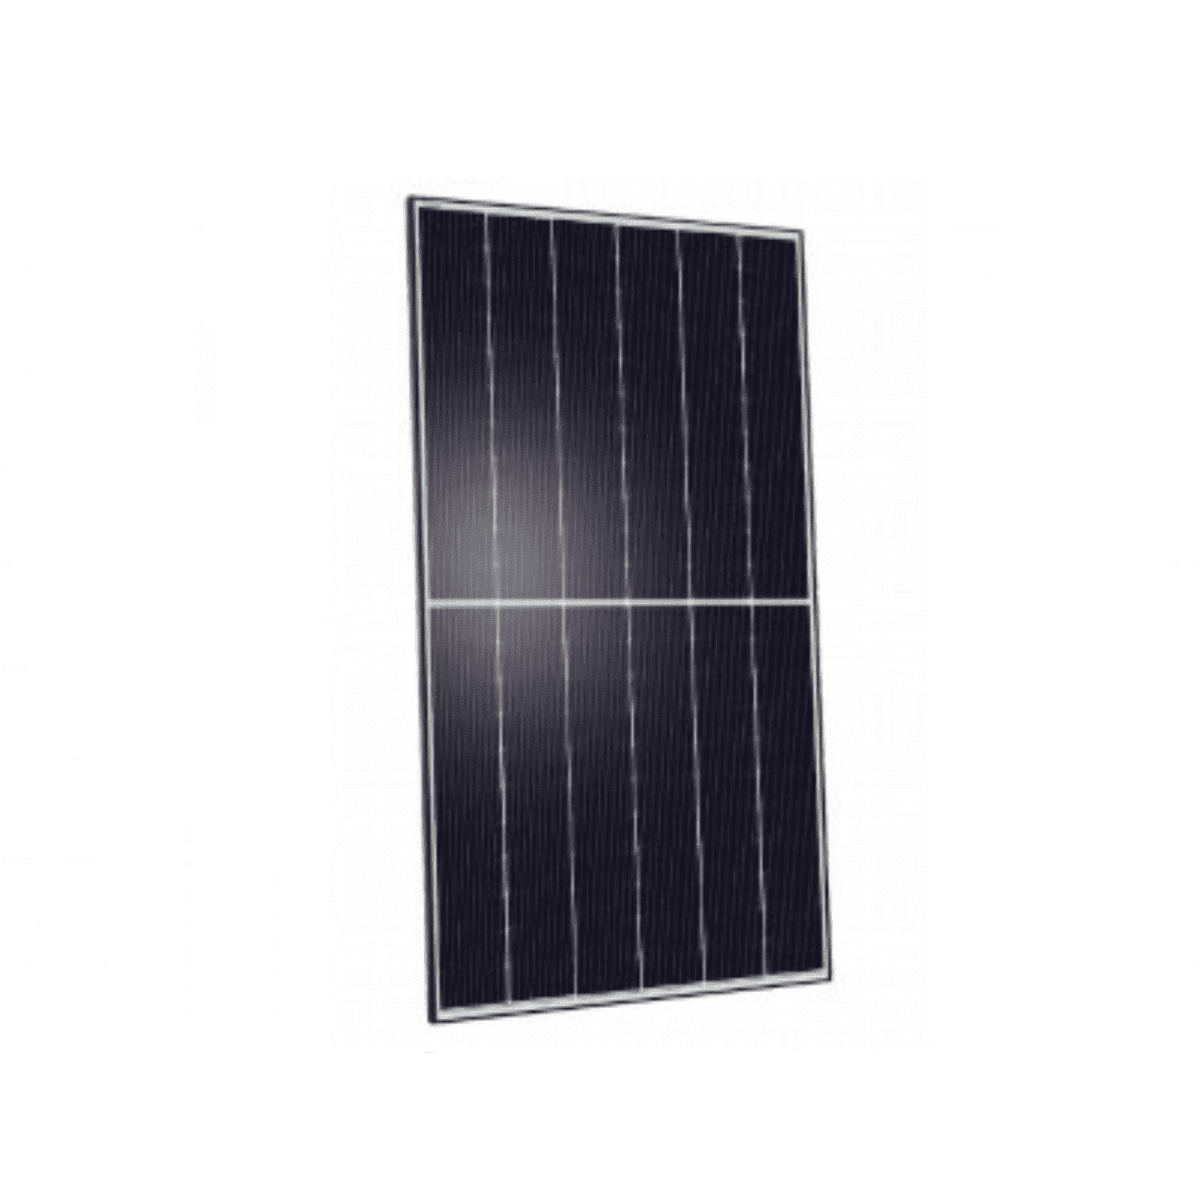 Hanwha Q CELLS Q.PEAK DUO ML-G9 385W Solar Panel on Sale